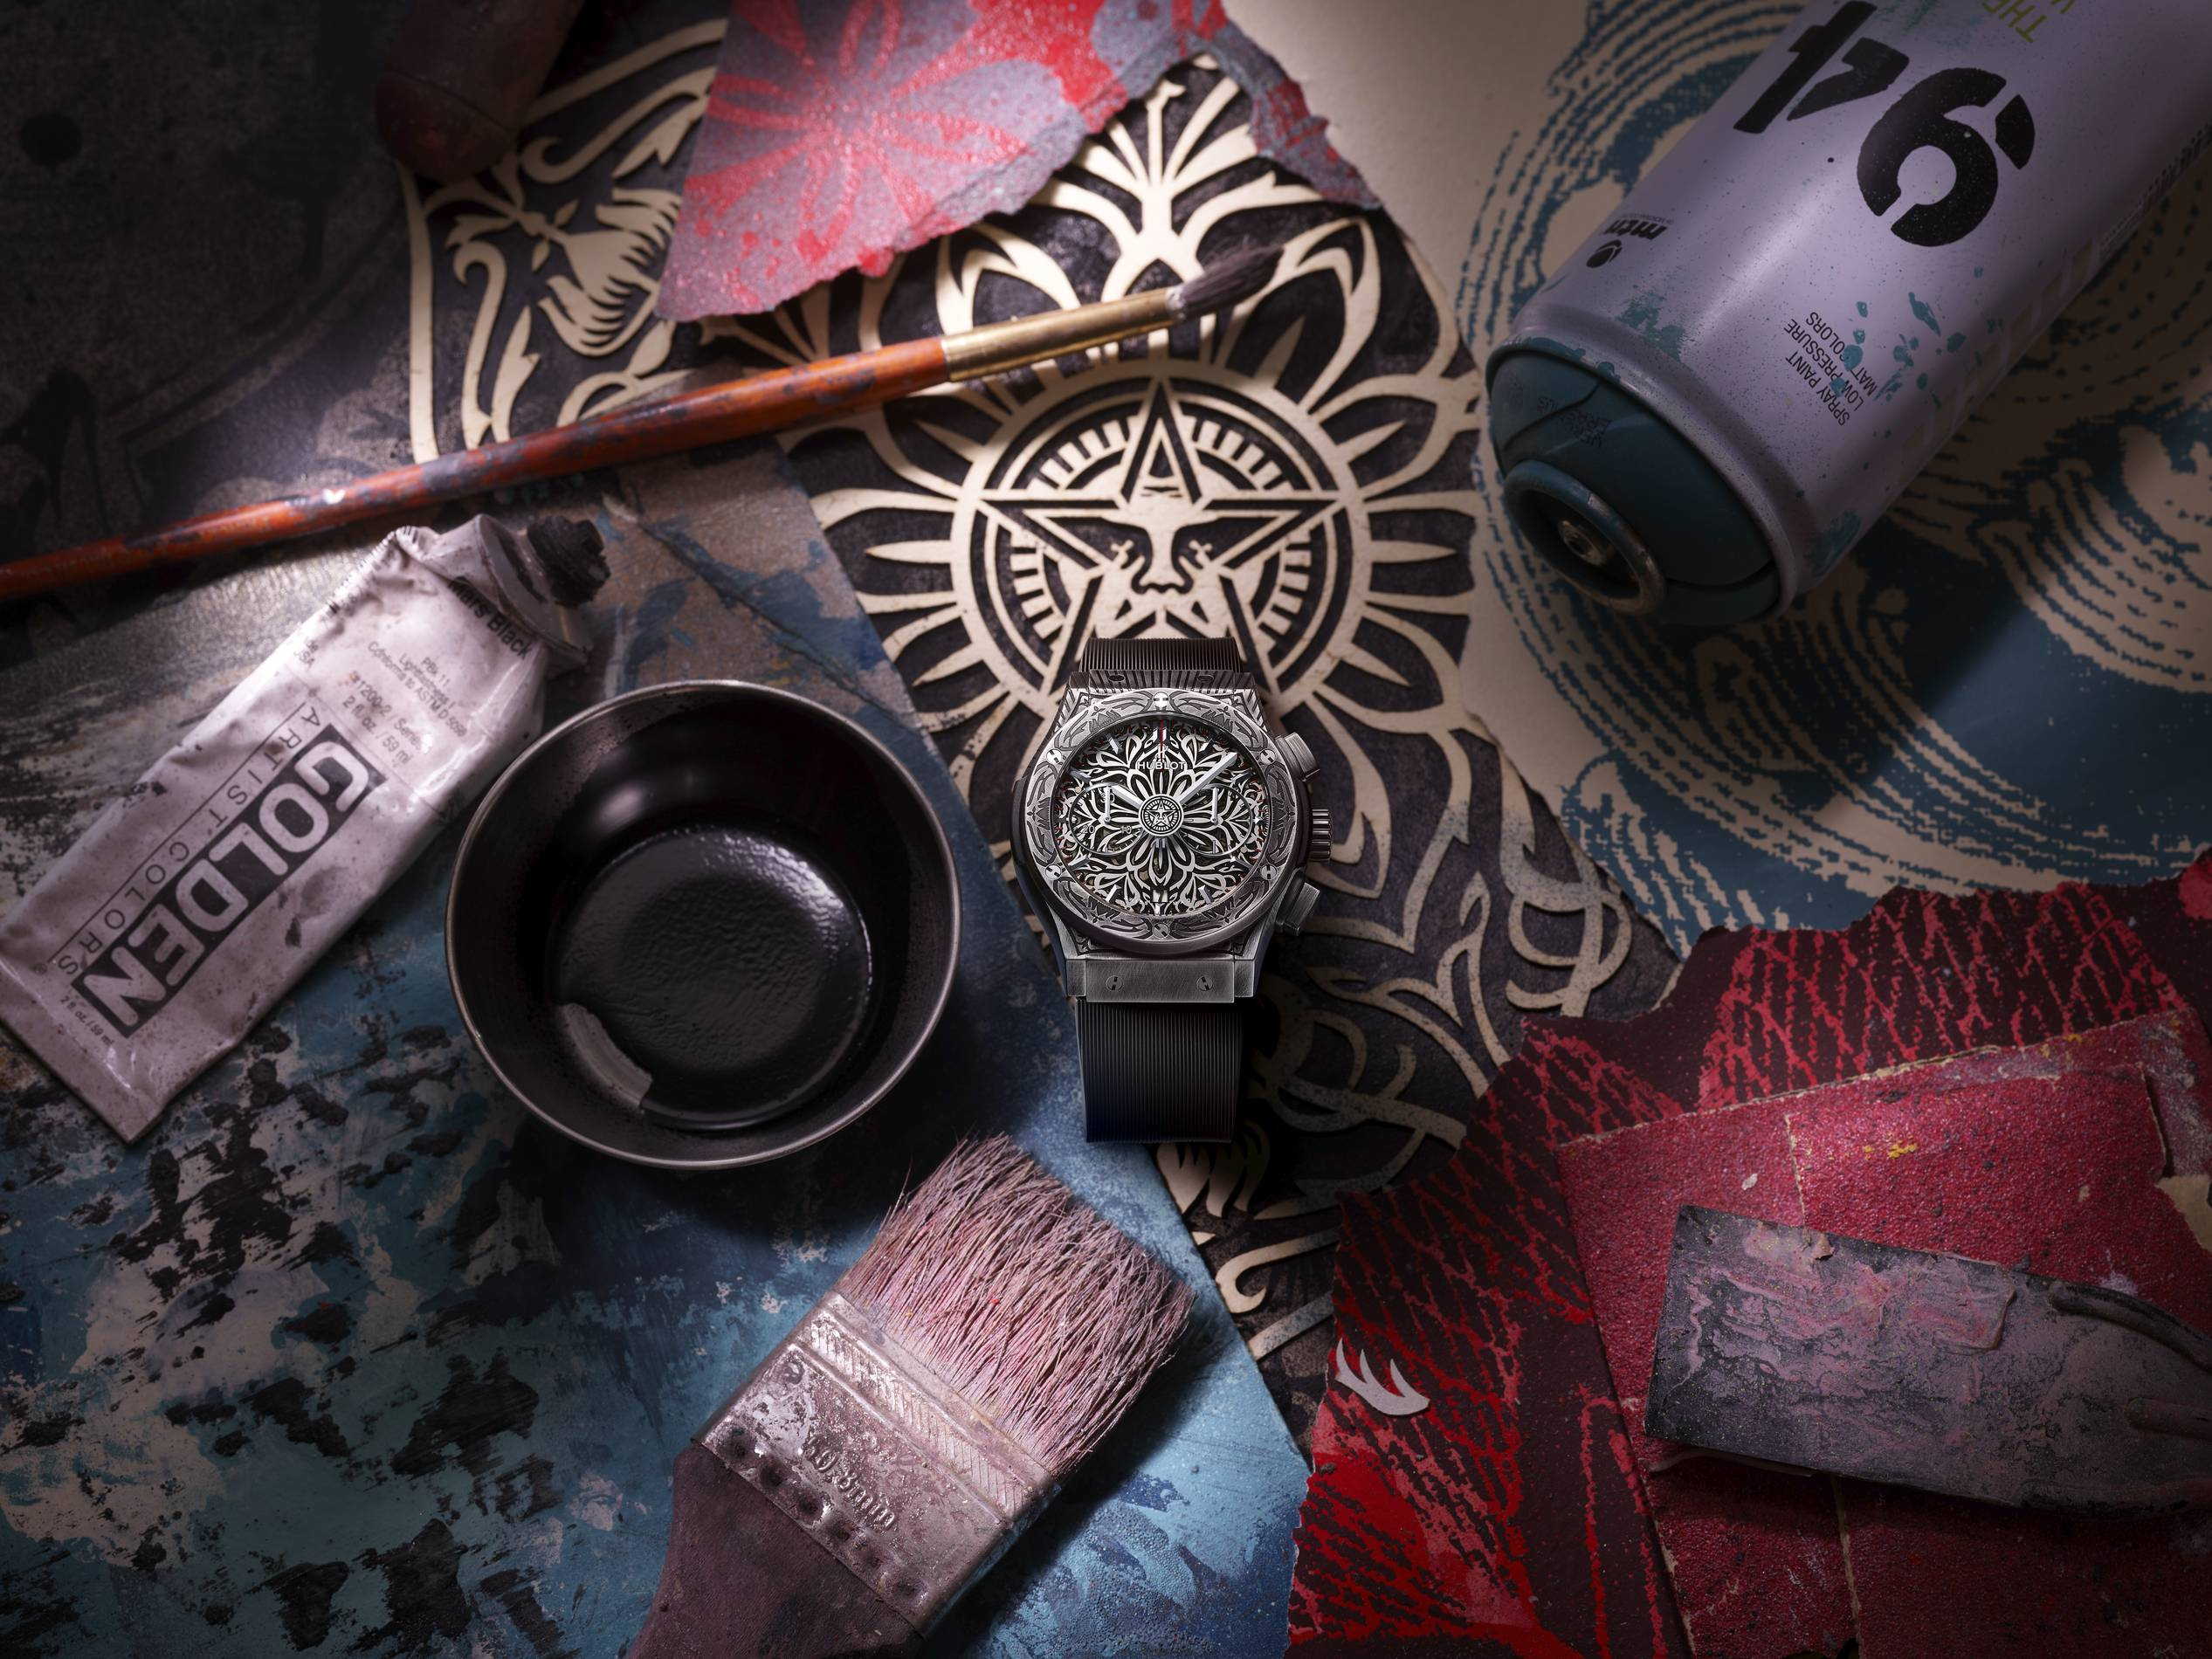 Hublot Shepard Fairey collaboration